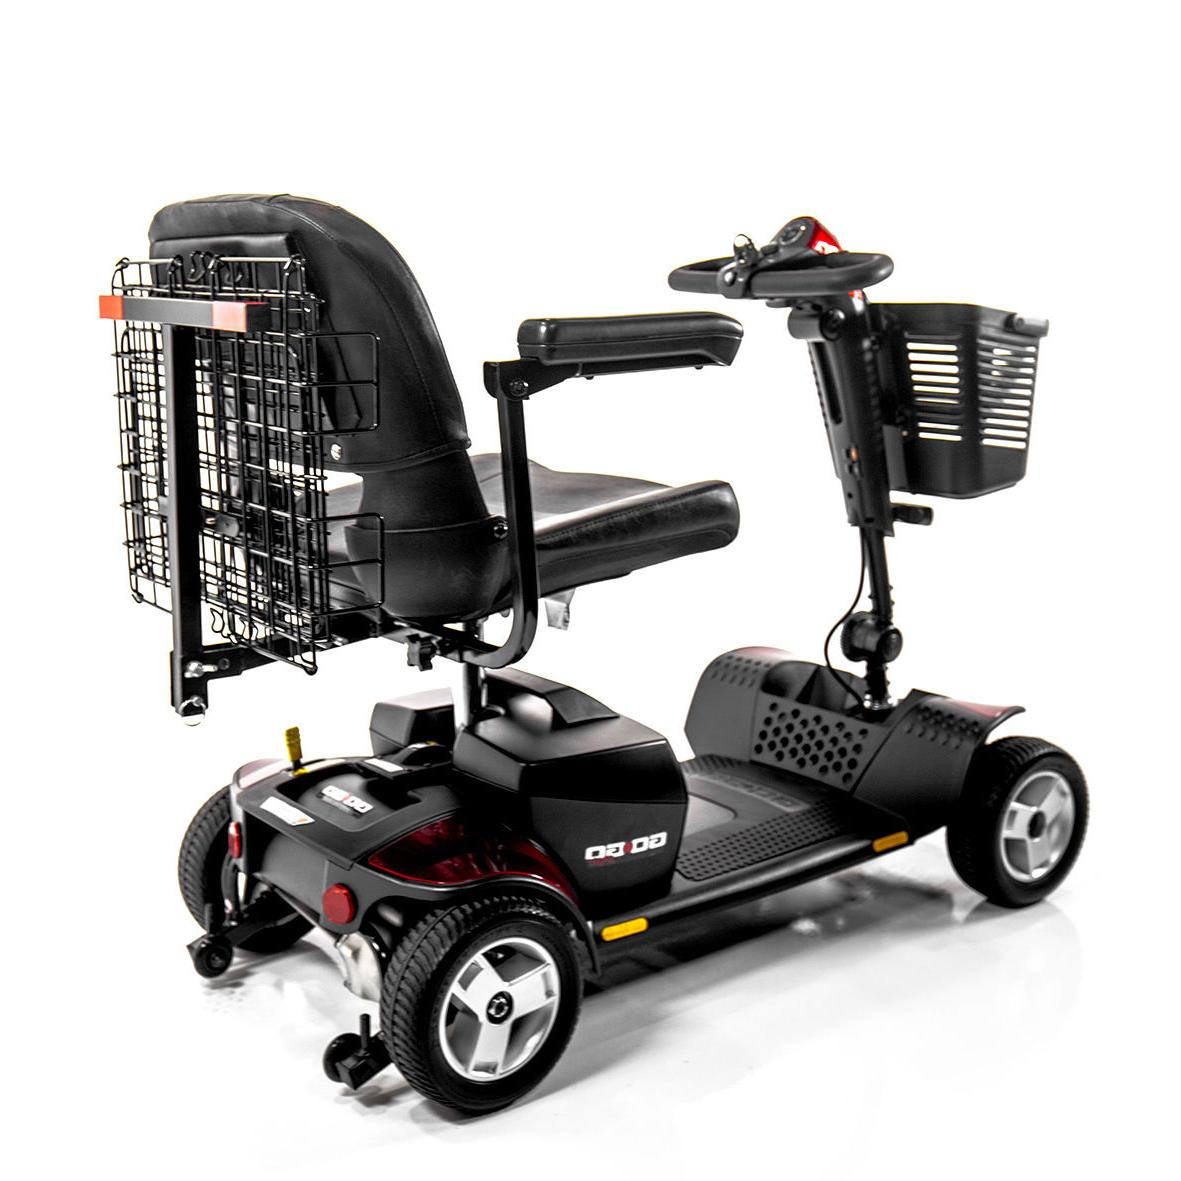 Challenger Mobility FOLDING SCOOTER BASKET Golden, J950